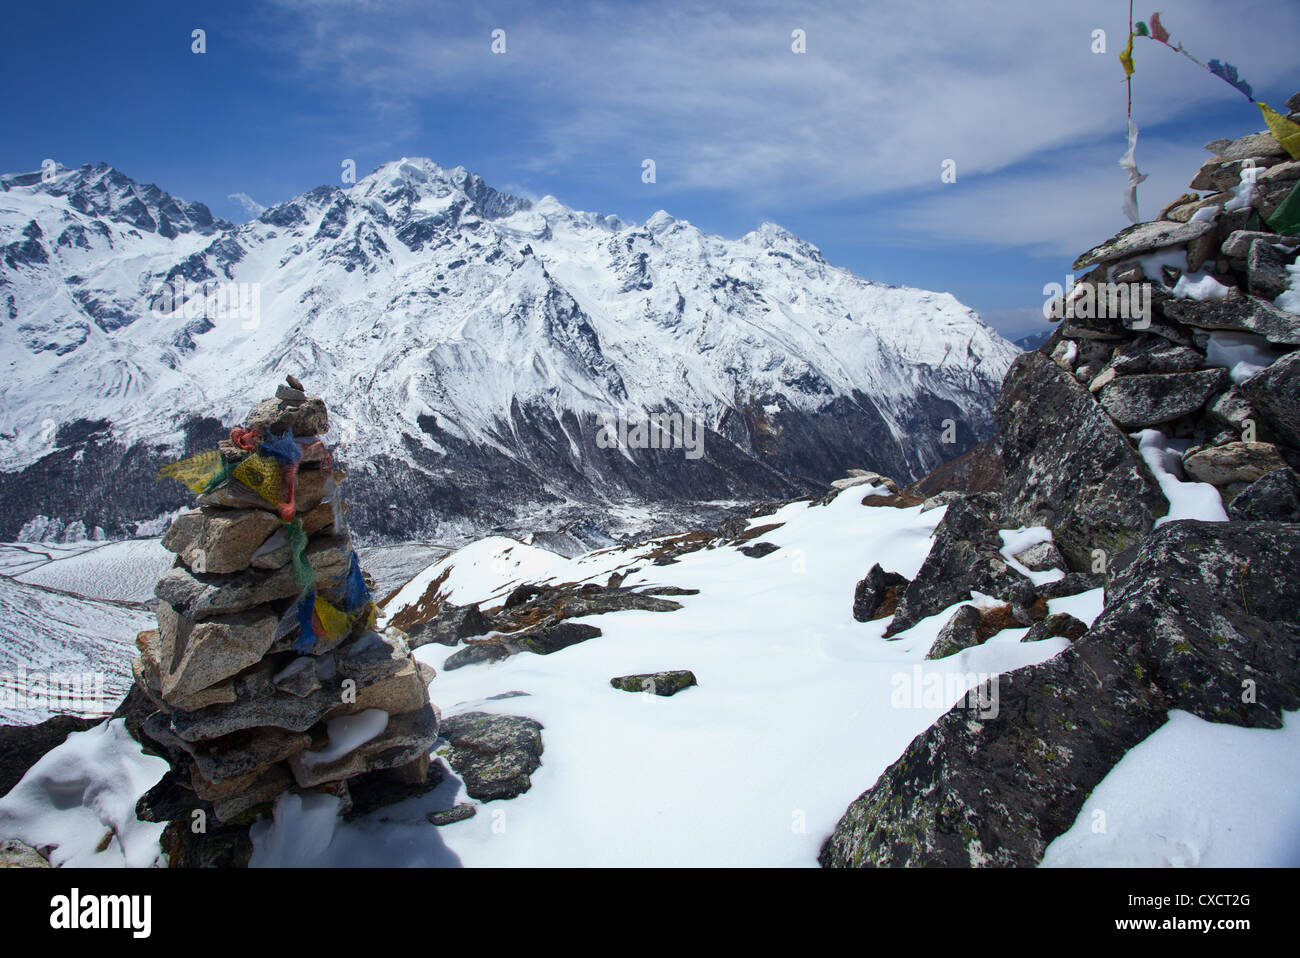 Summit of Kyanjin Ri mountain with a Buddhist monument and prayerflags, Langtang Valley, Nepal - Stock Image